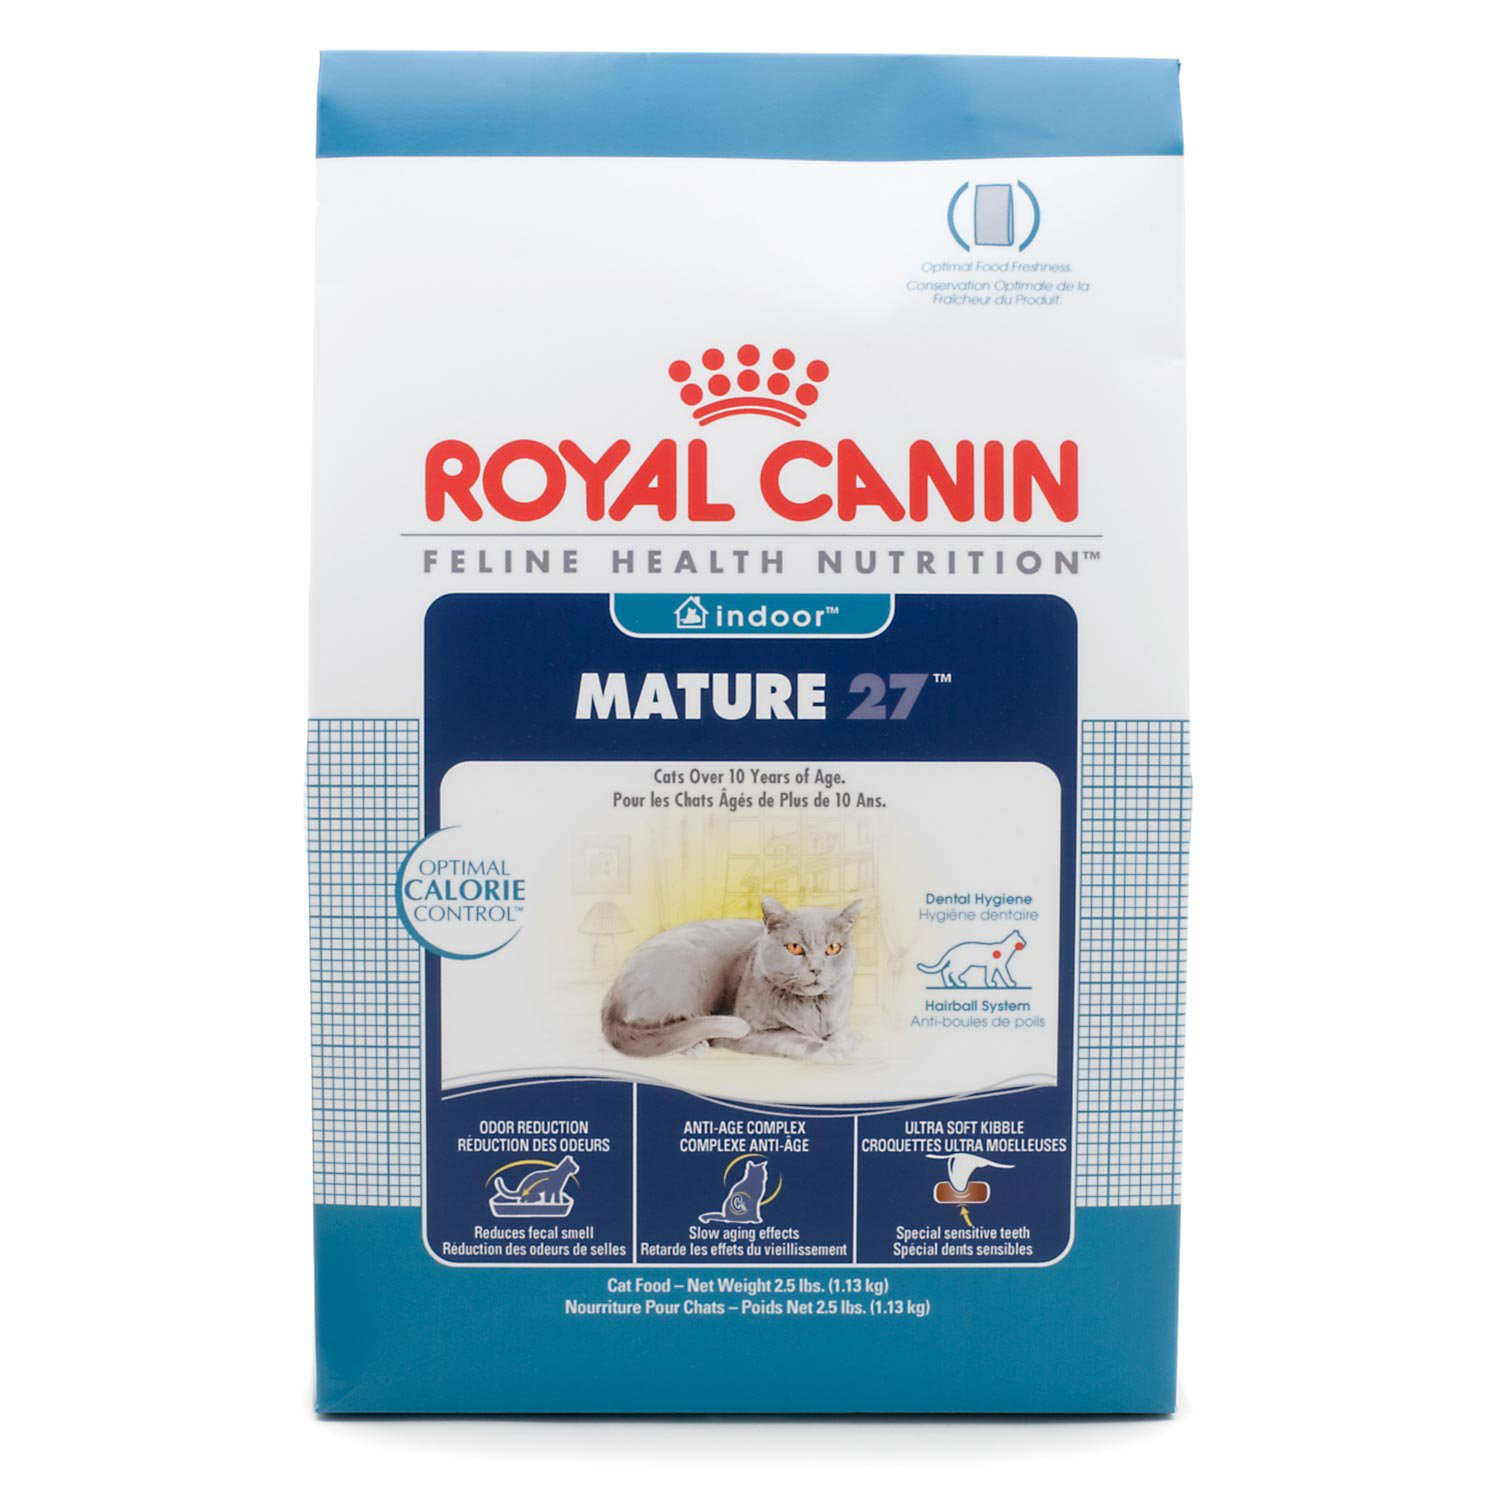 royal canin feline health nutrition indoor mature 27 5 5 lb petco store. Black Bedroom Furniture Sets. Home Design Ideas